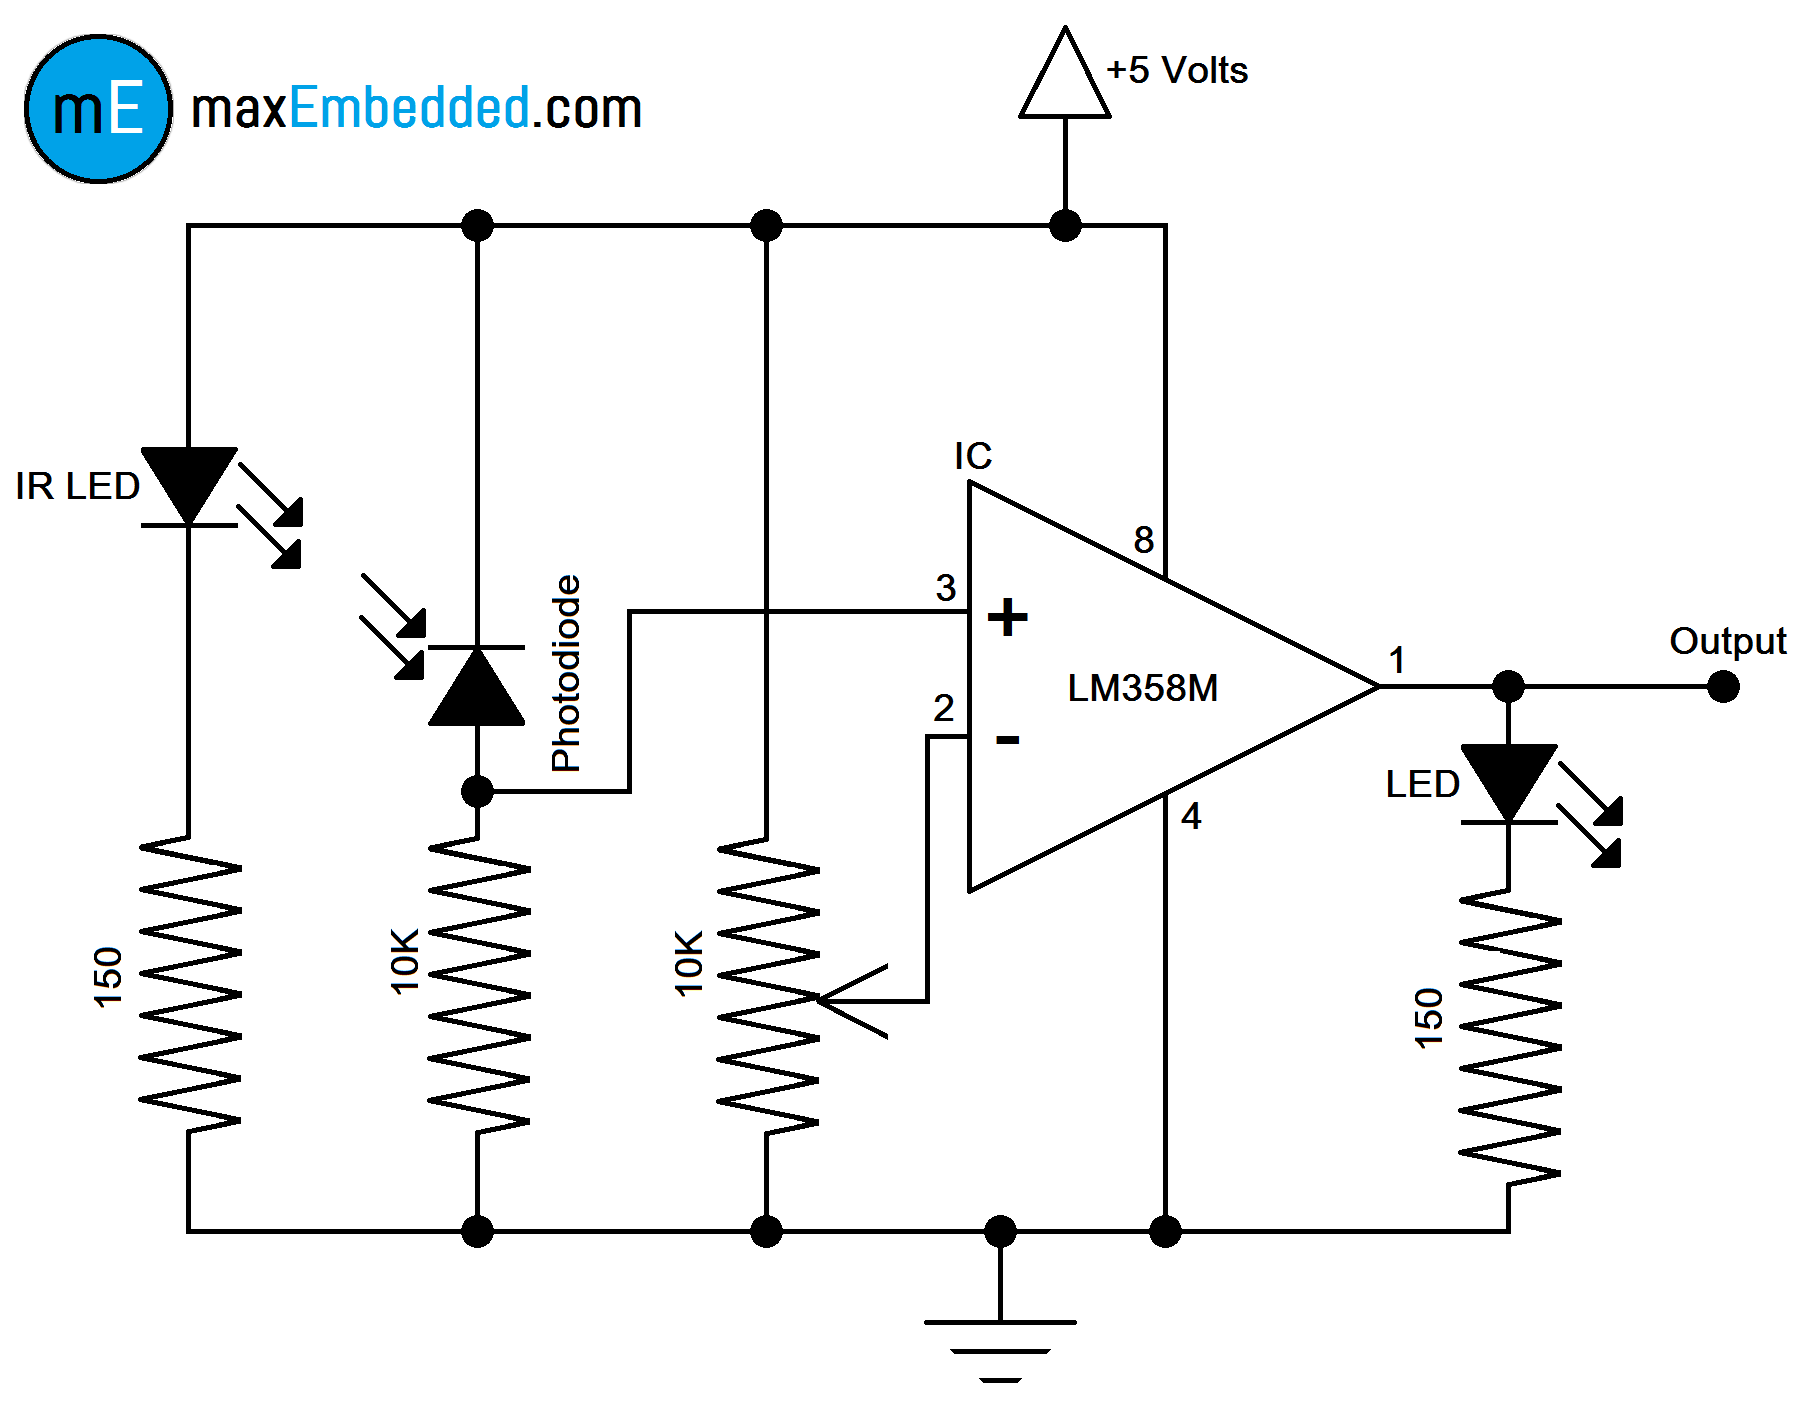 circuit diagram new?resize=611%2C475 how to build an ir sensor maxembedded ir receiver wiring diagram at fashall.co